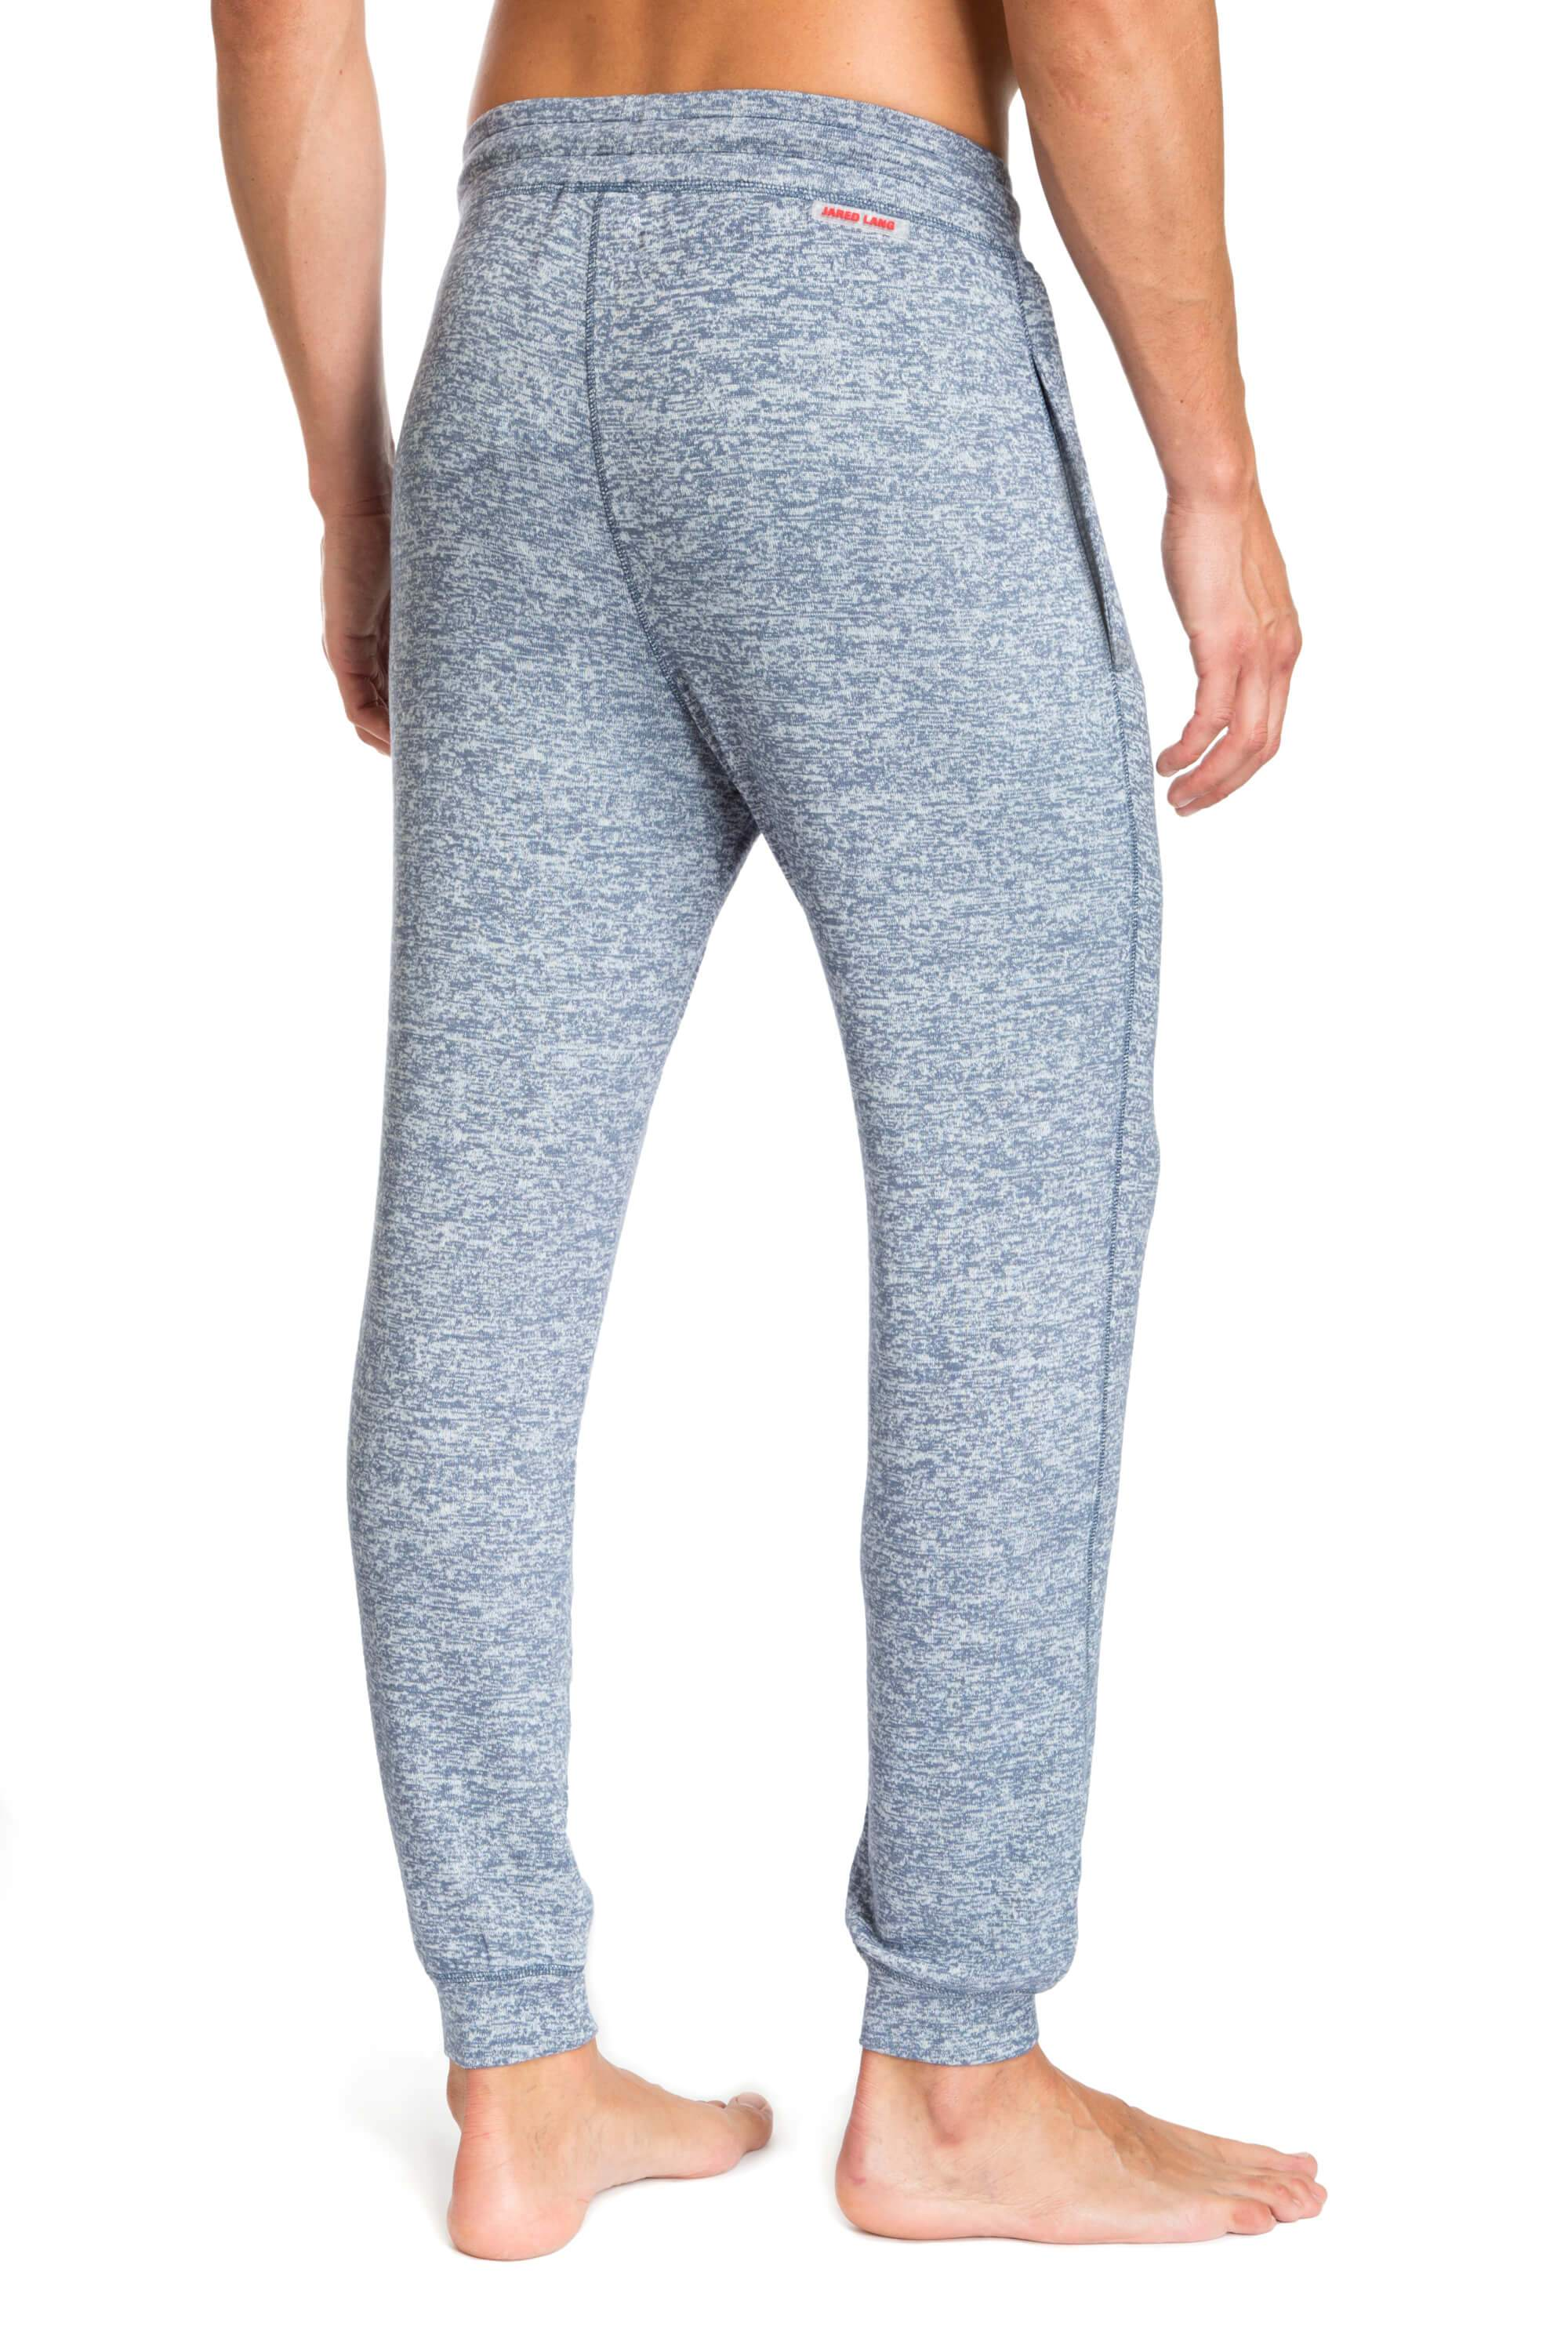 Light Blue Melange Designer Joggers for Men JLJGR1-400 - Back - Jared Lang